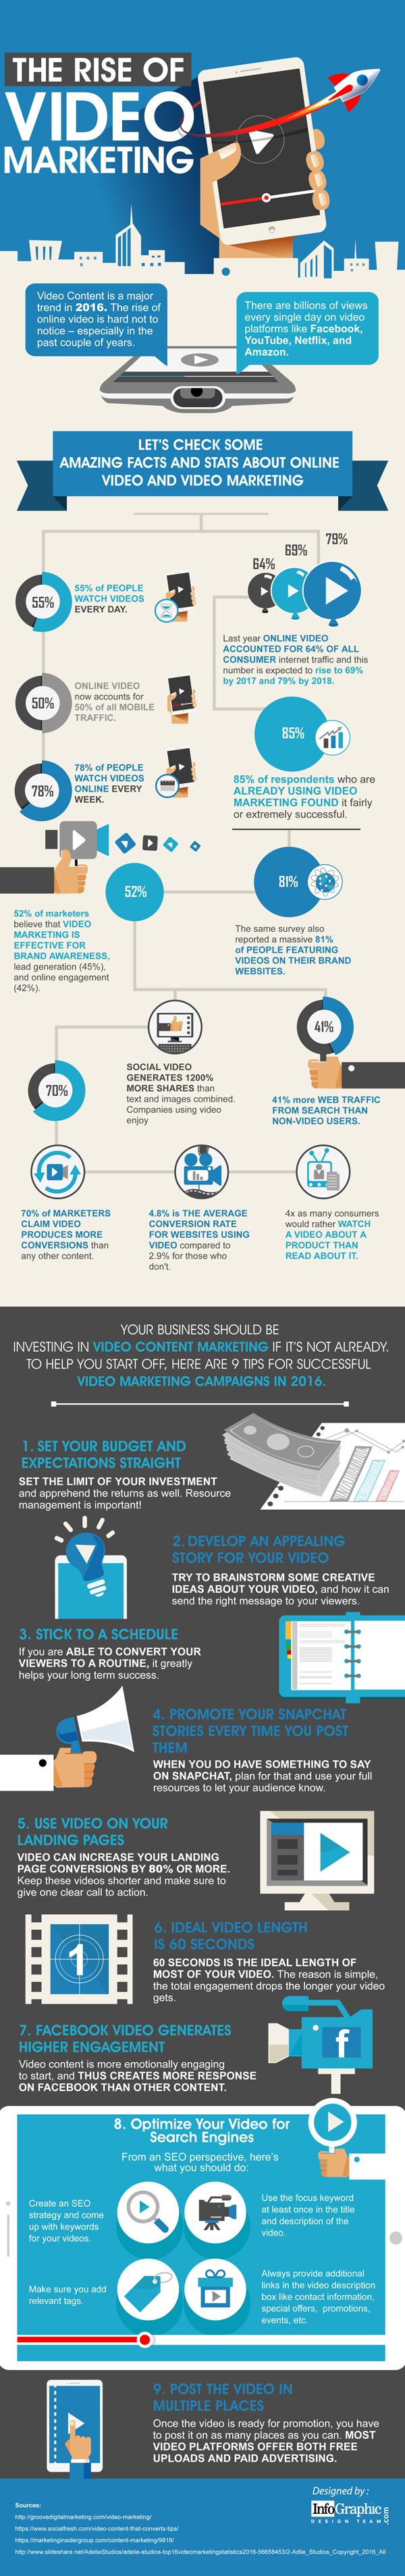 Infographic - The Rise of Video Marketing